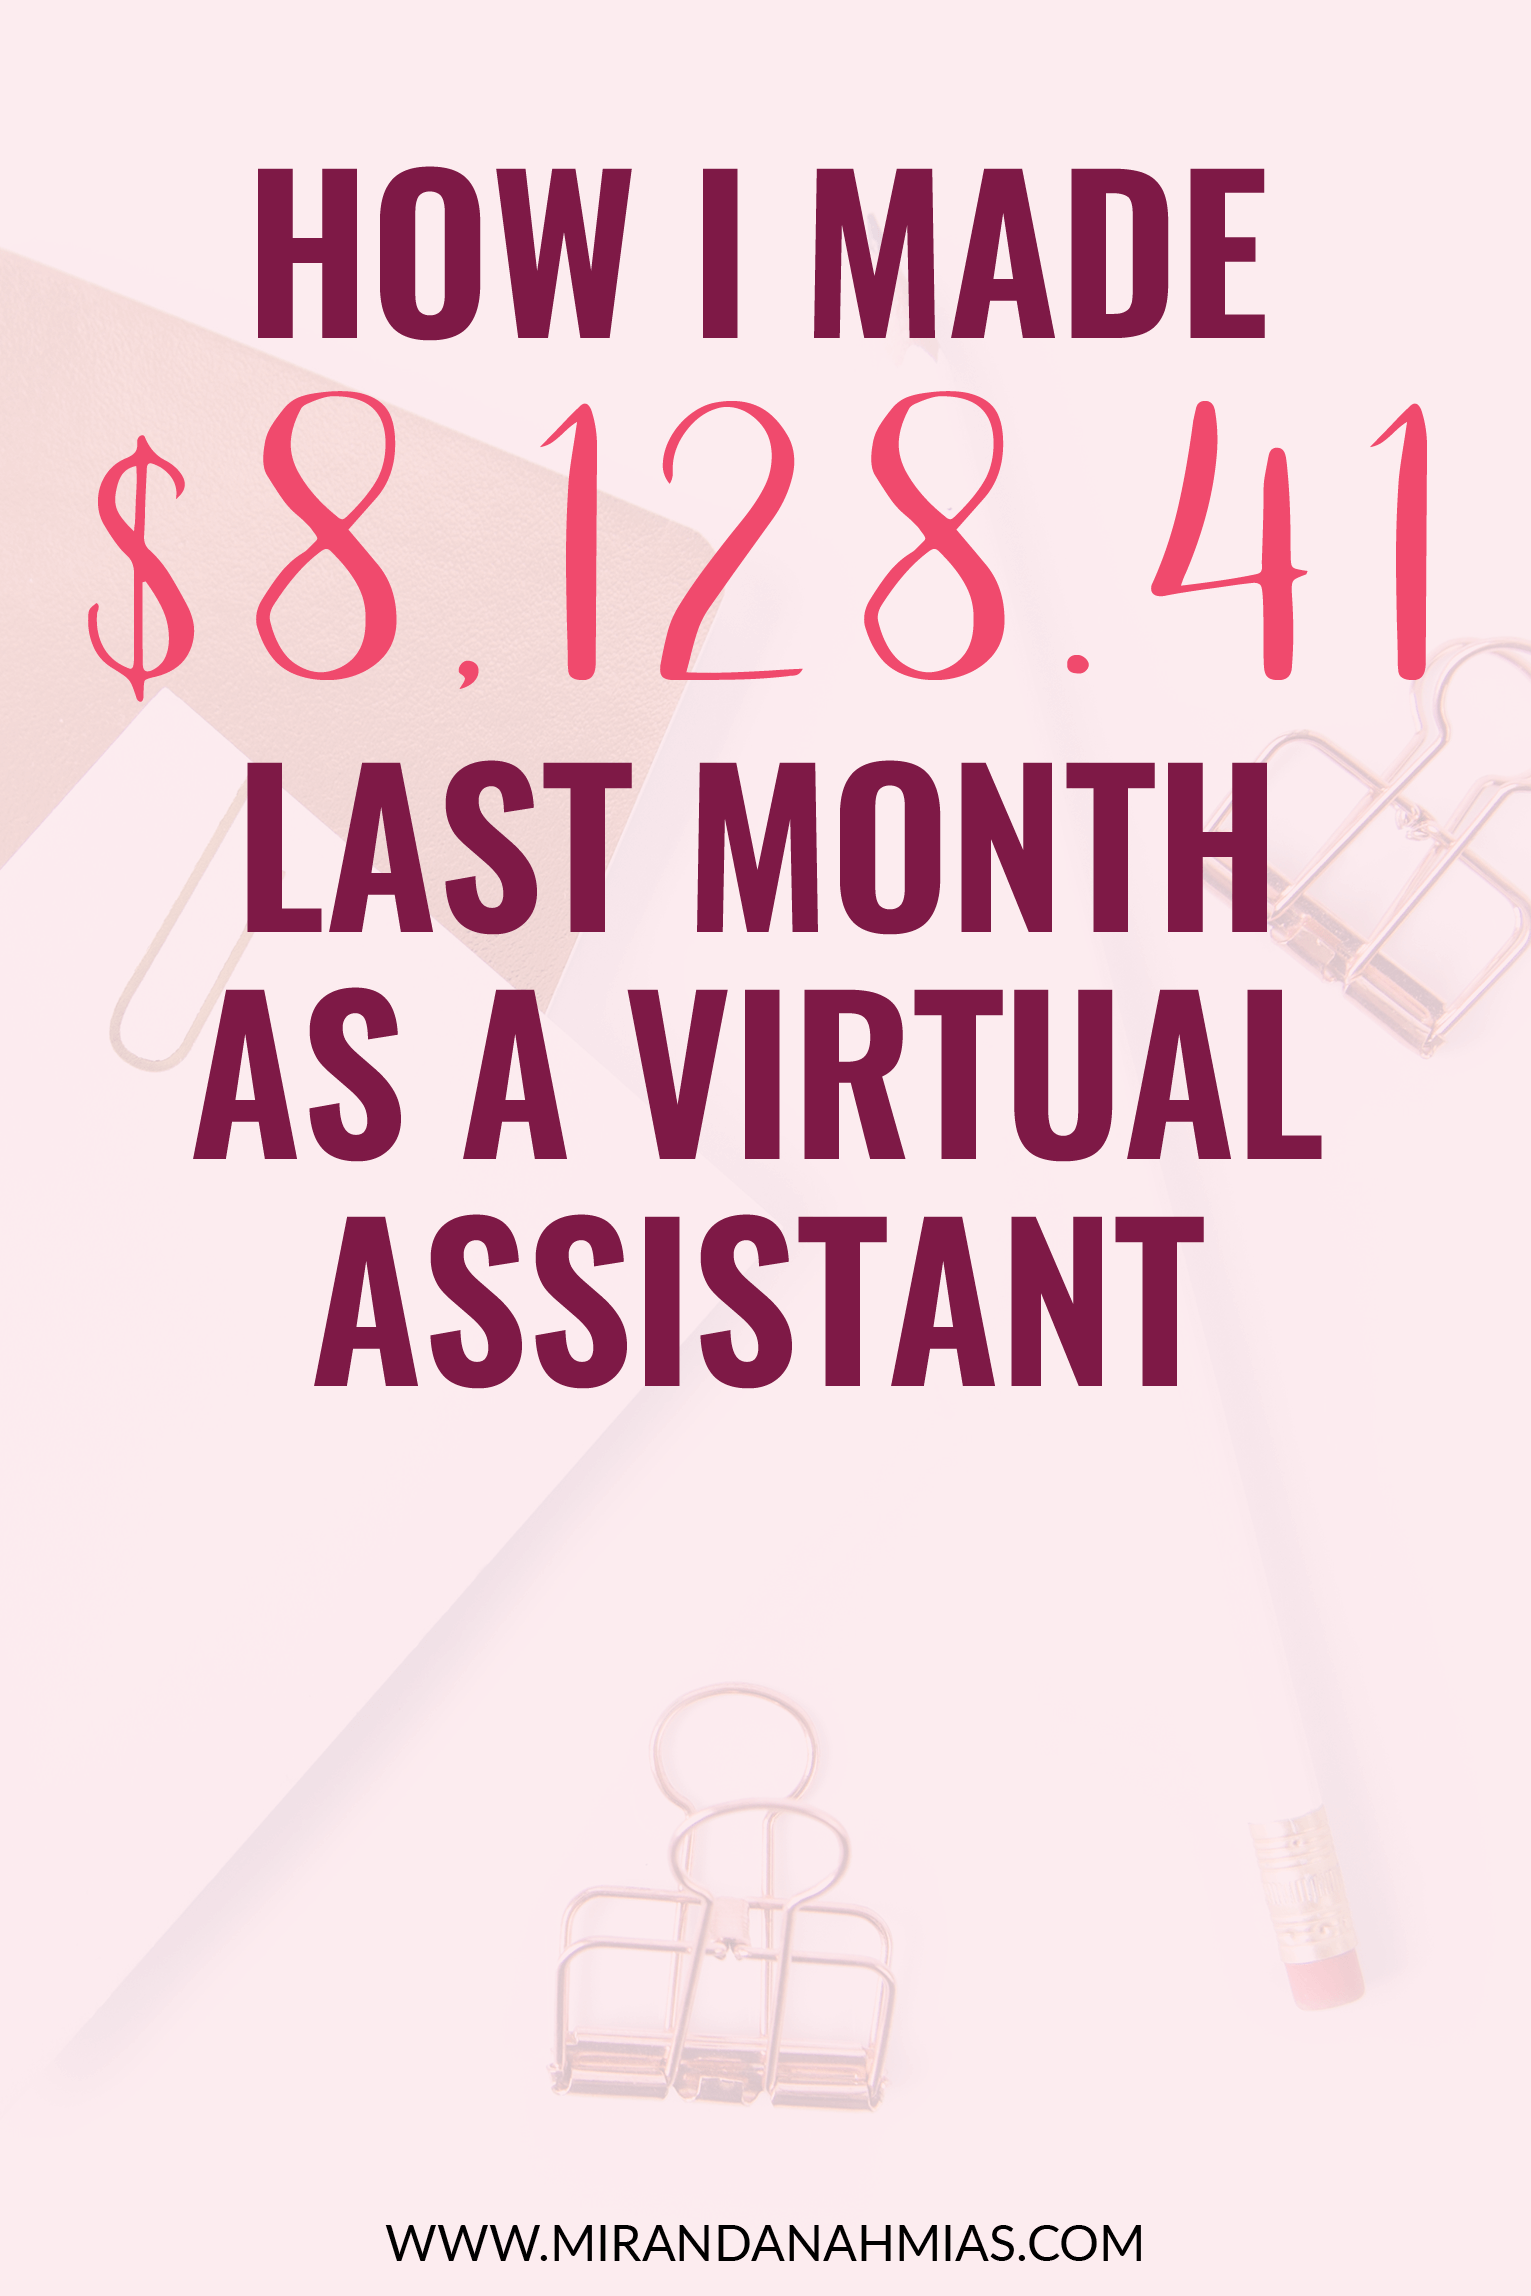 What It's Like to Make Over $8,000 Per Month as a Virtual Assistant. The February 2017 income report from a growing online service provider // Miranda Nahmias